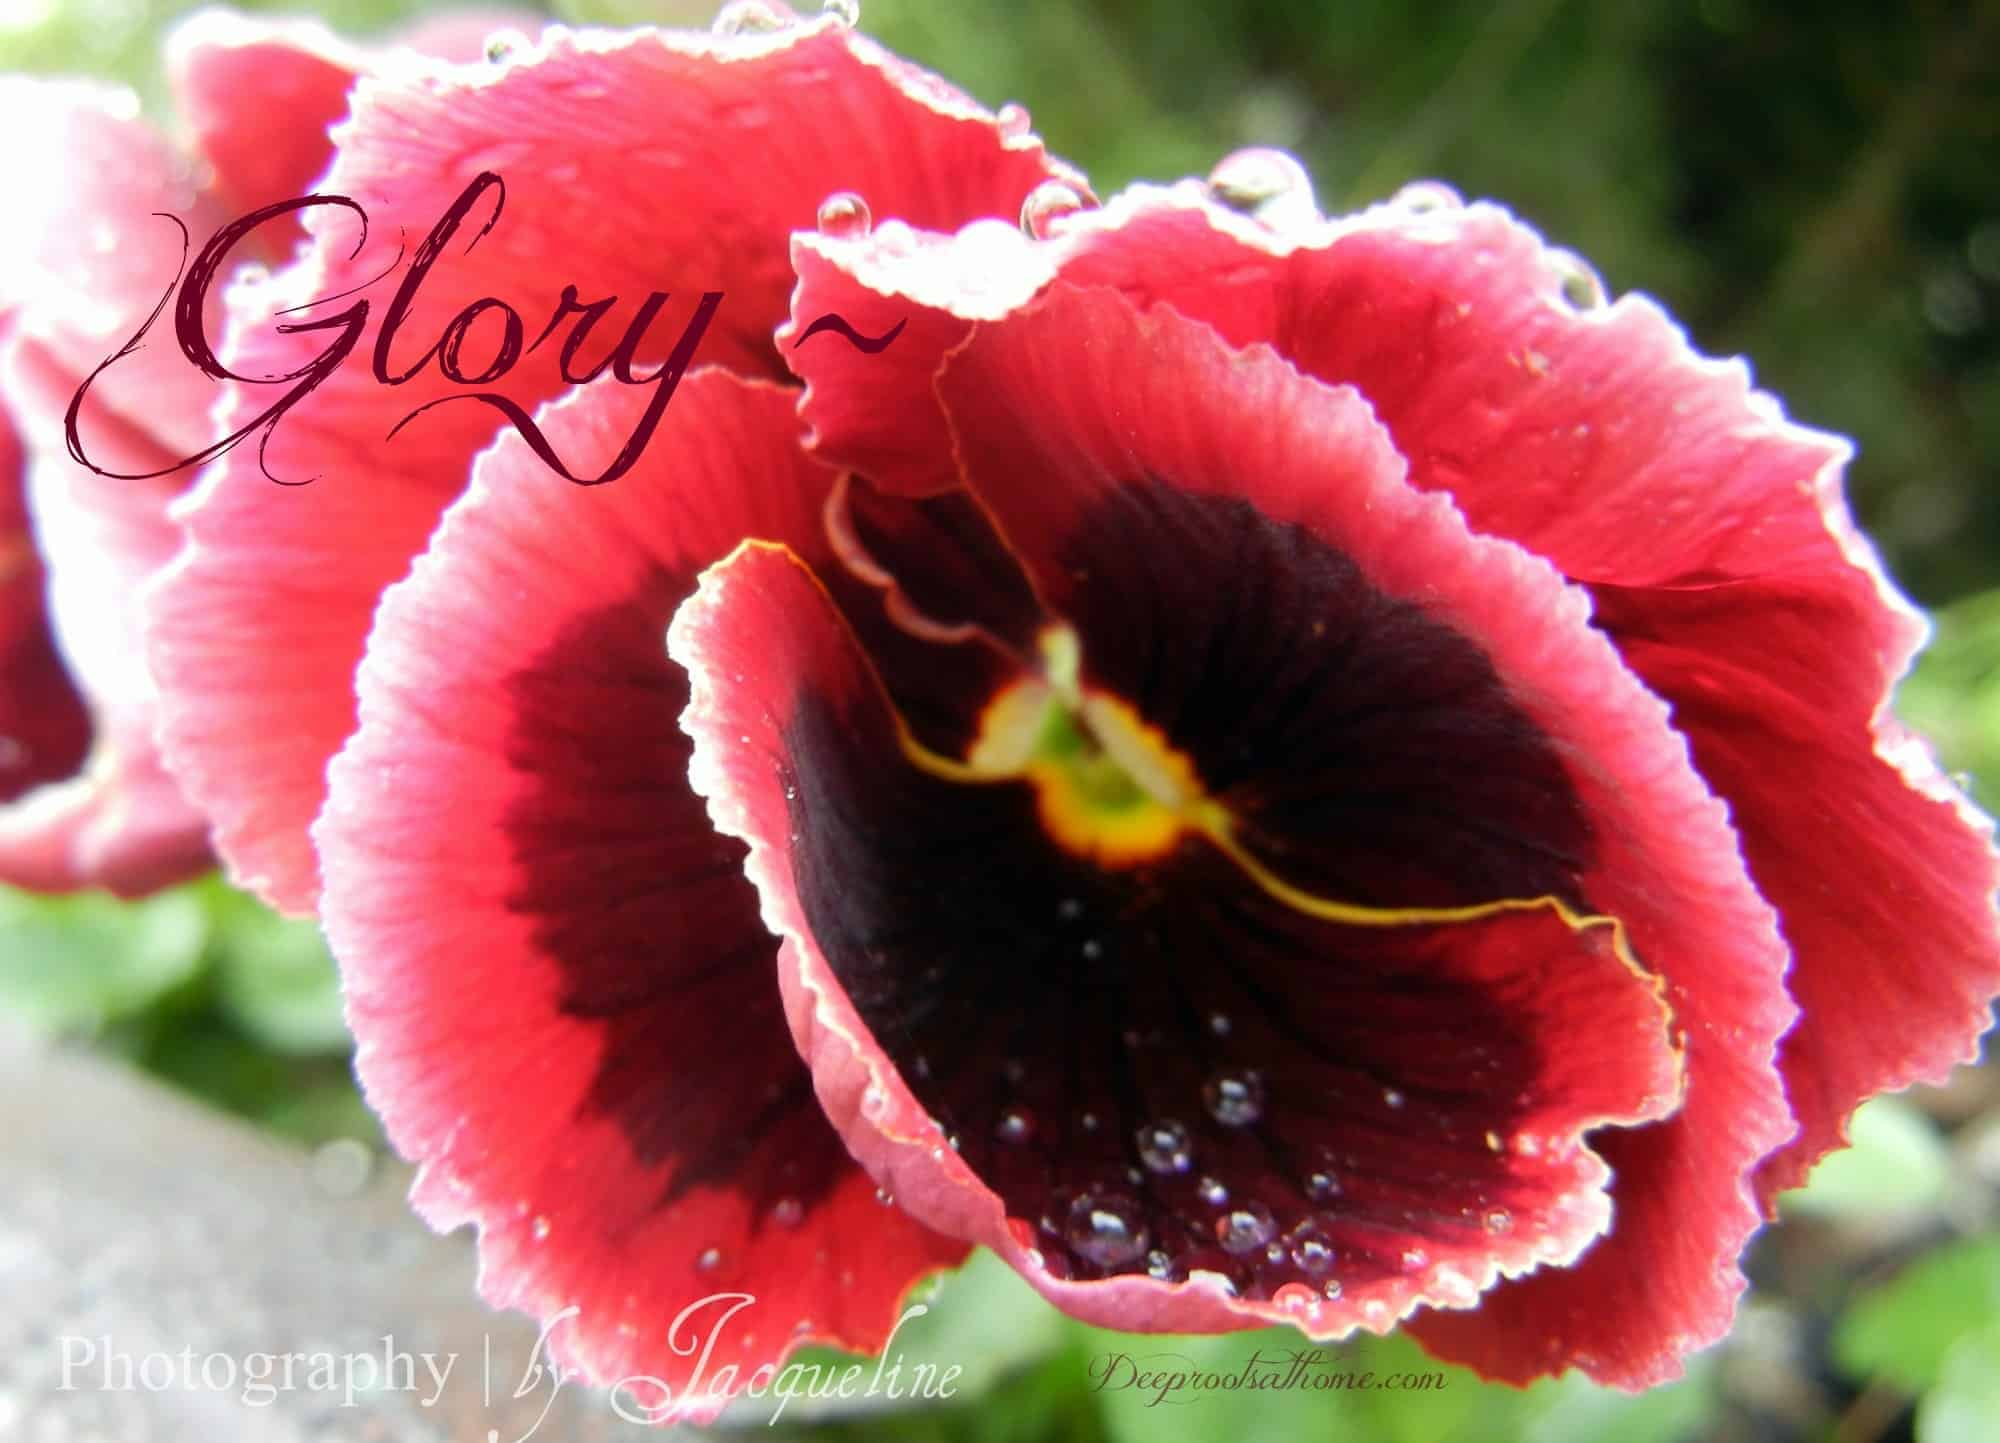 Glory ~, photography, Blaise Pascal, C.S. Lewis, The Problem Of Pain, pansy, worship, glory of the Lord, Macro Monday, lunatic, quotes, Creation, wonder, nature, beauty, design, artwork, jewels, color, theology, mathematics, treasures, earth, plants, pansy, flowers, red, garden, Eden, spring, fall, praise, adoration, hidden God,